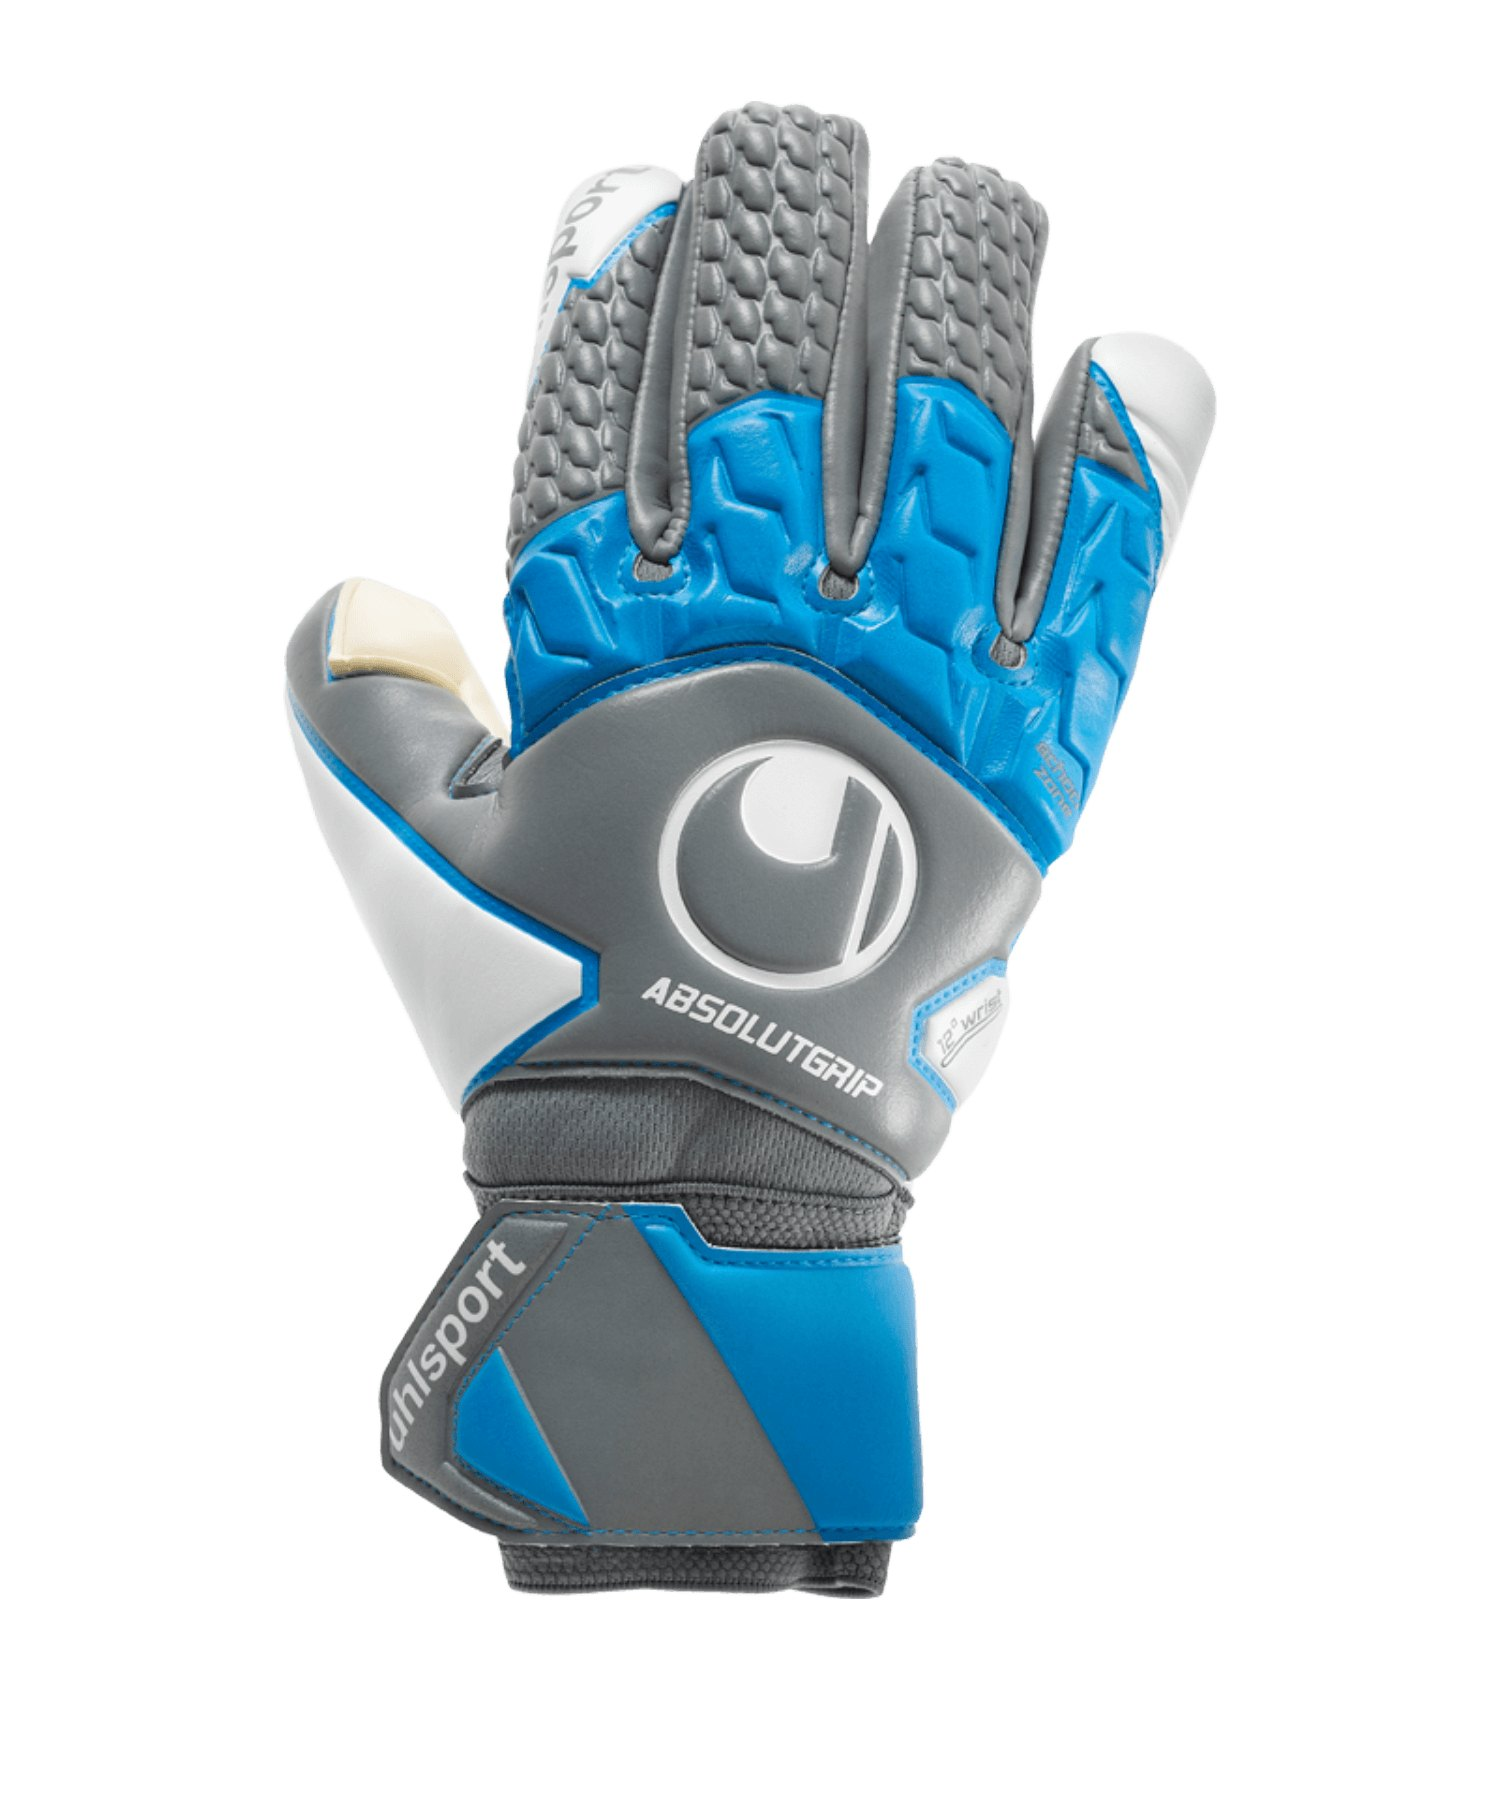 Uhlsport Absolutgrip Tight HN TW-Handschuh F01 - schwarz